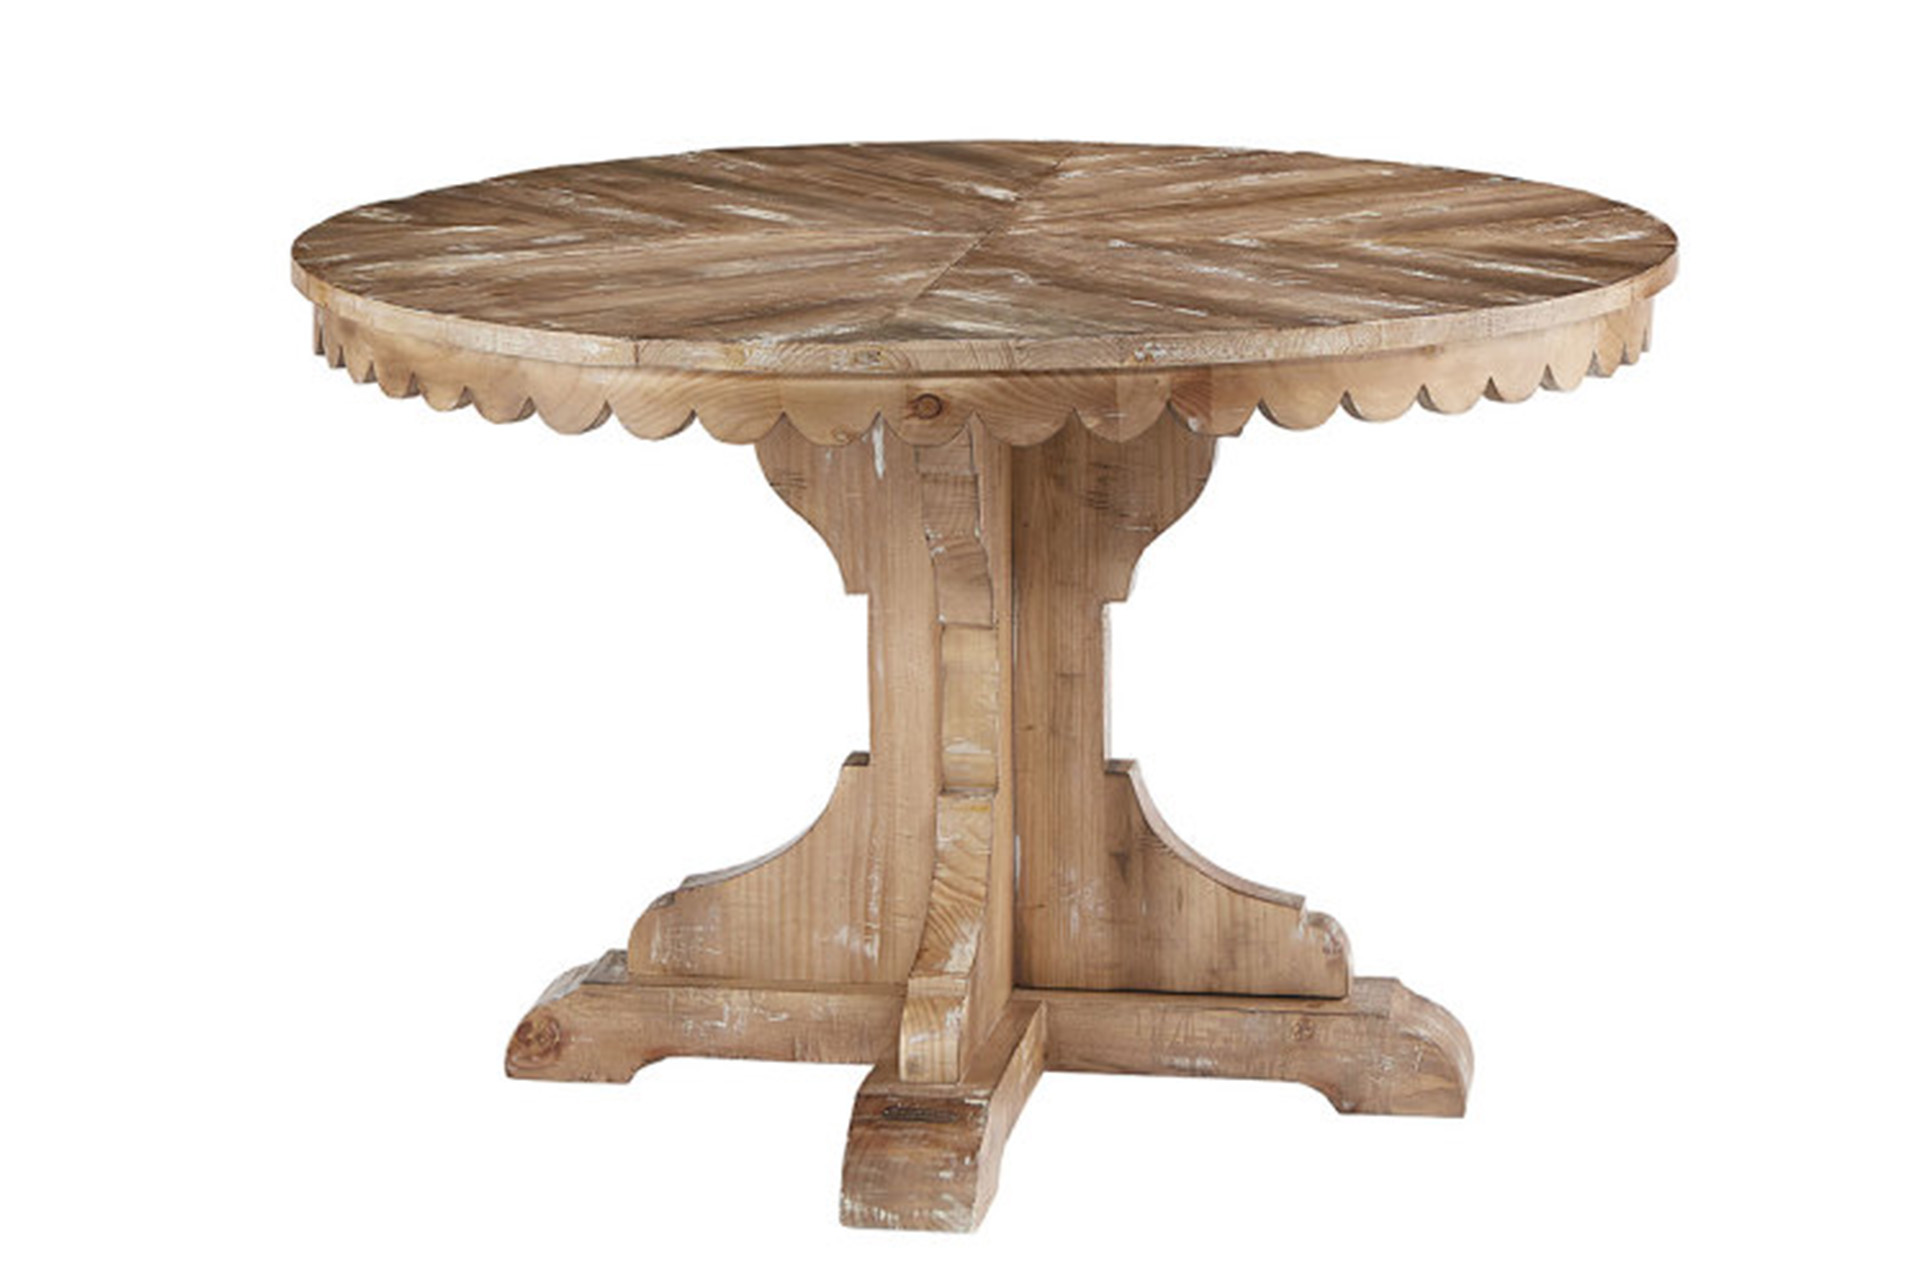 Magnolia Home Top Tier Round Dining Table By Joanna Gaines (Qty: 1) Has  Been Successfully Added To Your Cart.